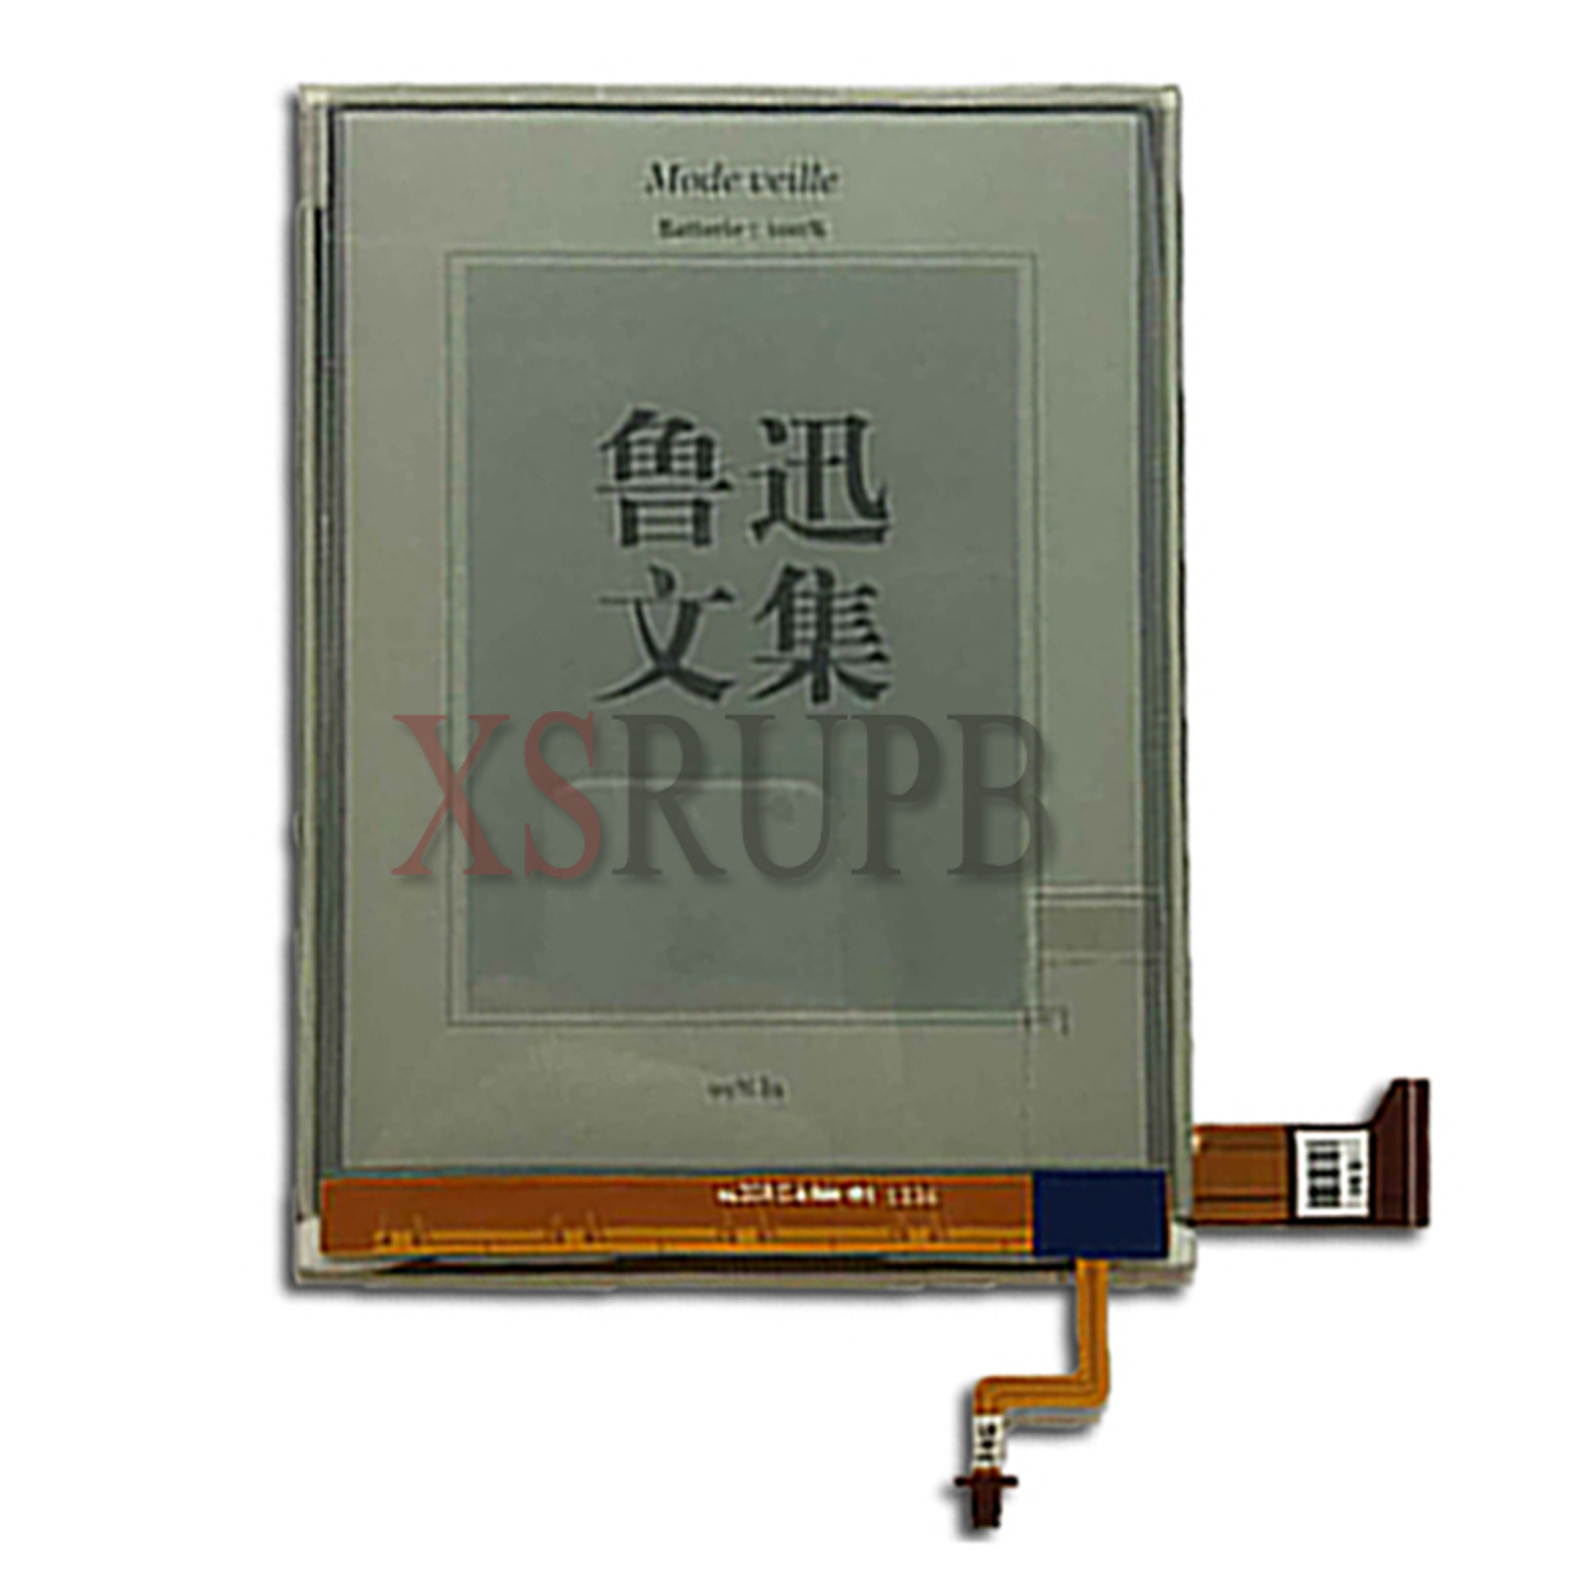 NEW Original E-Ink 758*1024 6.0 inch HD XGA Pearl Screen For bq Nuevo Cervantes 8GB Reader Ebook eReader LCD Display 6inch e ink ebook ereader ed060xg1 lf t1 11 ed060xg1t1 11 768 1024 hd xga pearl screen for kobo glo reader lcd display